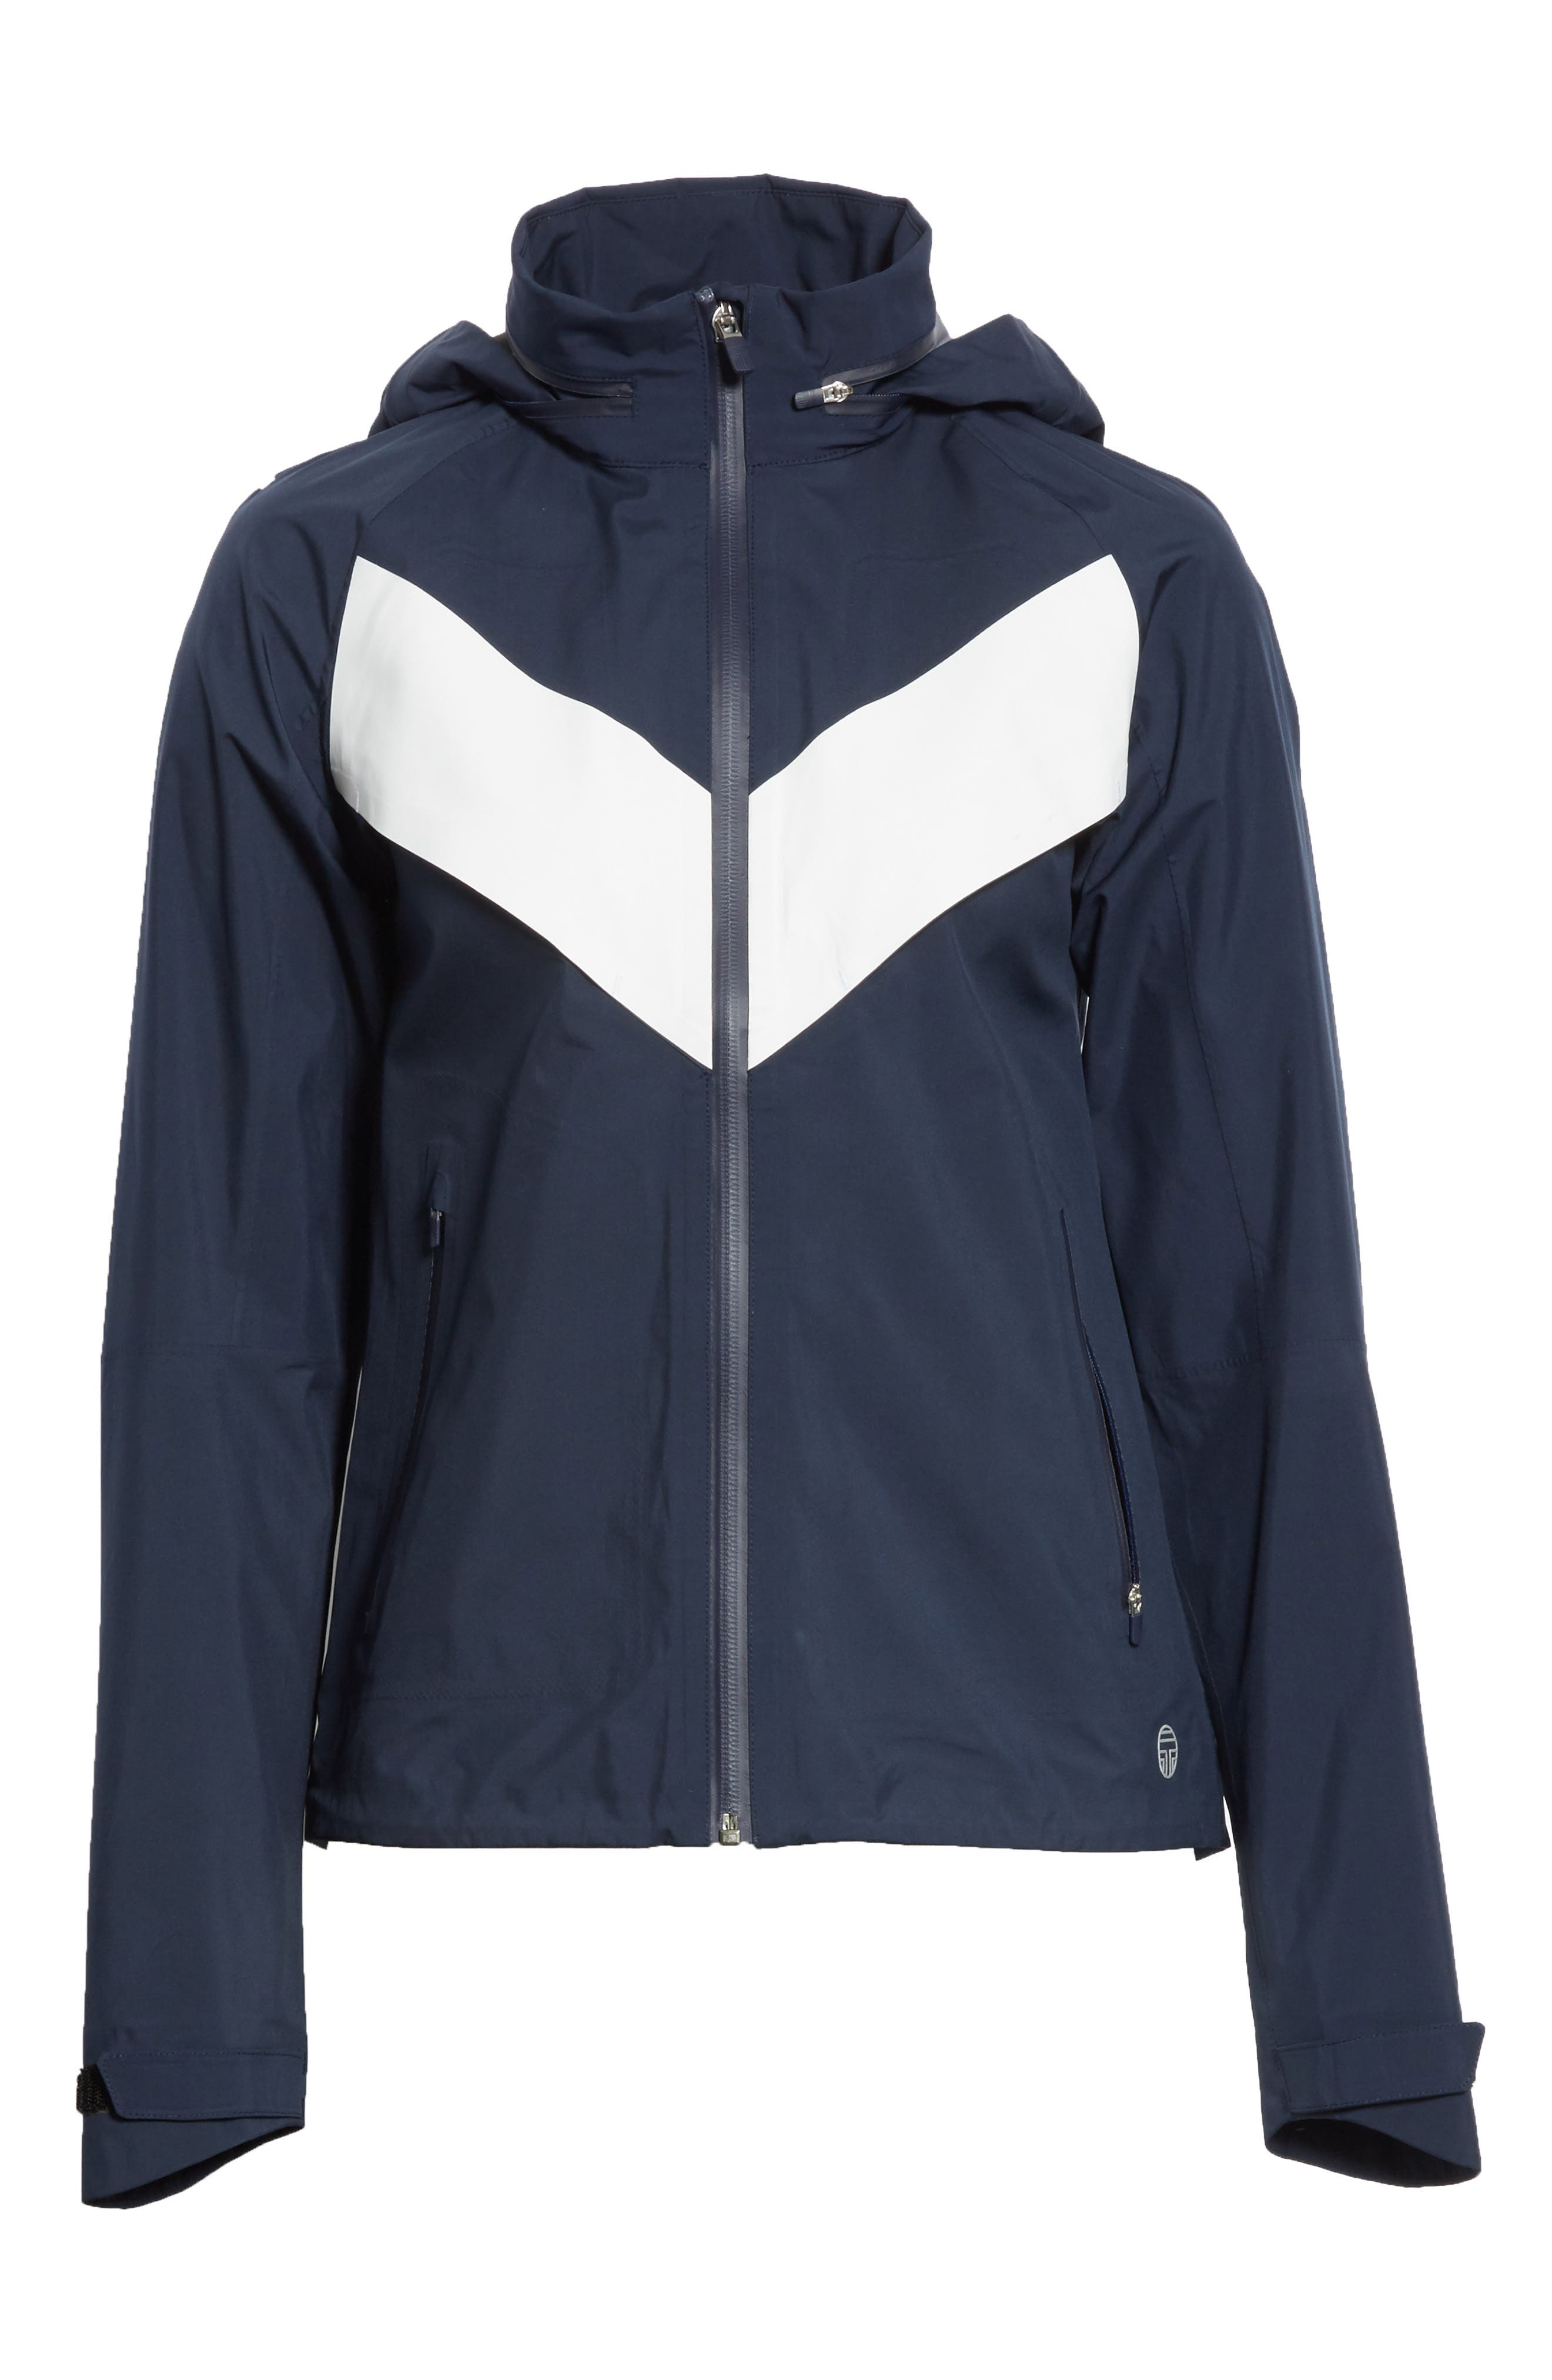 All Weather Run Jacket,                             Alternate thumbnail 7, color,                             Tory Navy/ White Snow